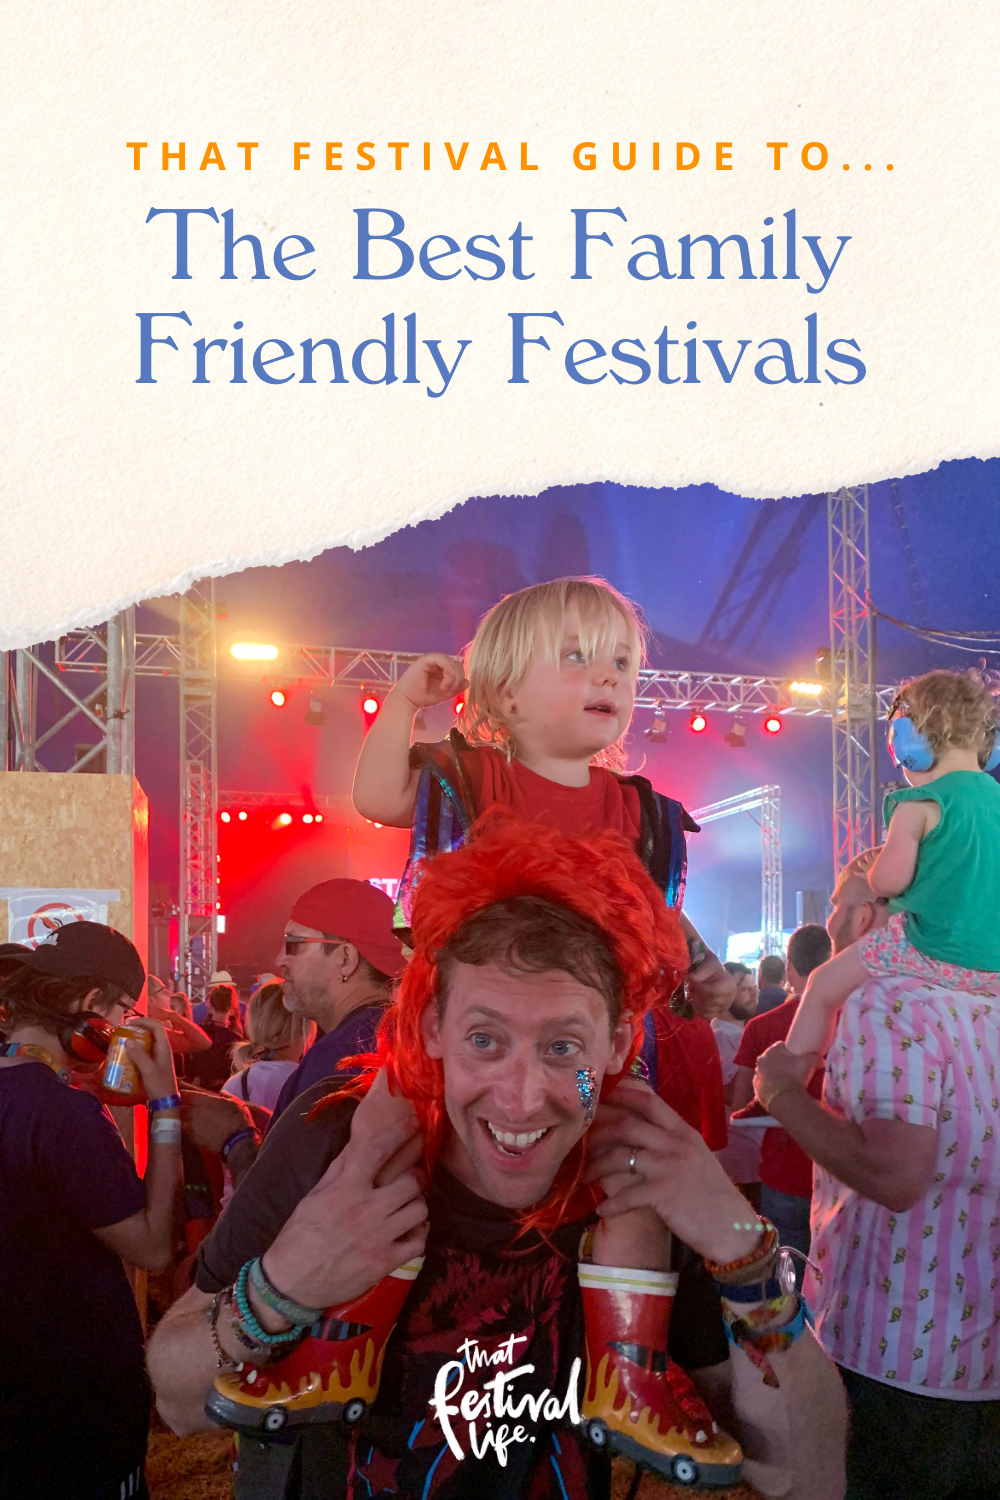 That Festival Guide to... The Best Family Friendly Festivals